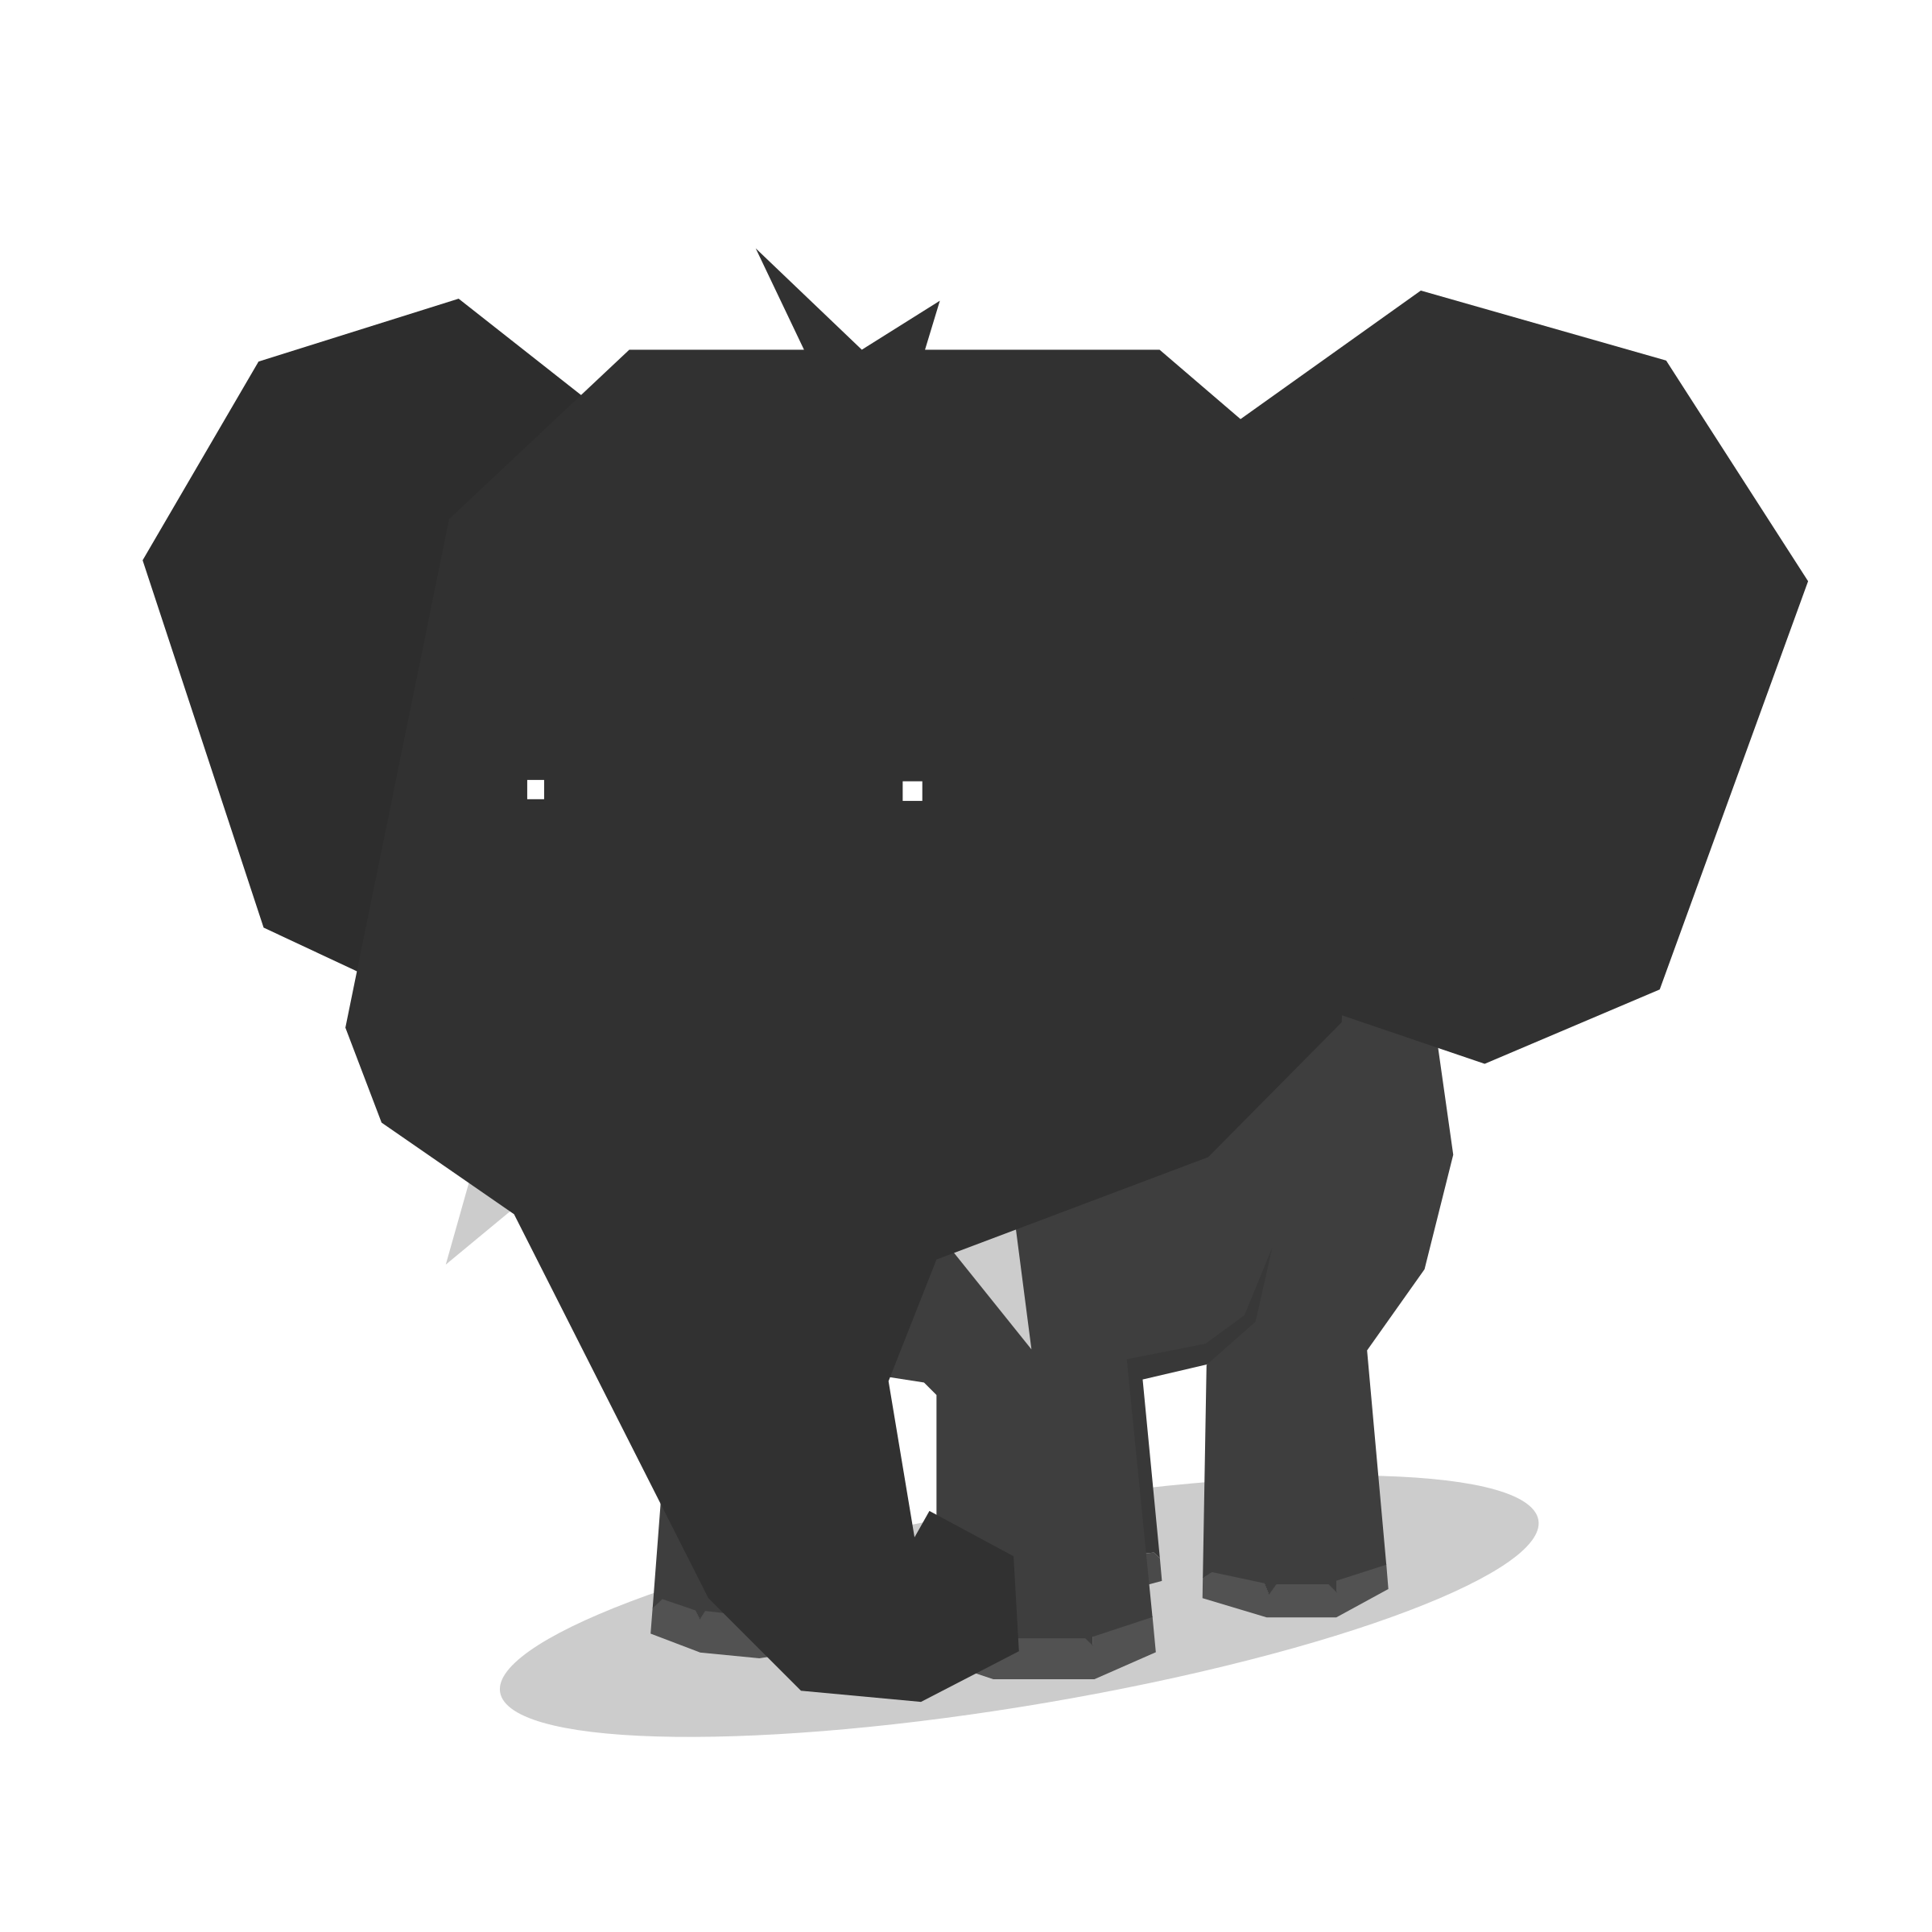 Clipart - Elephant Minimal flat design Animal